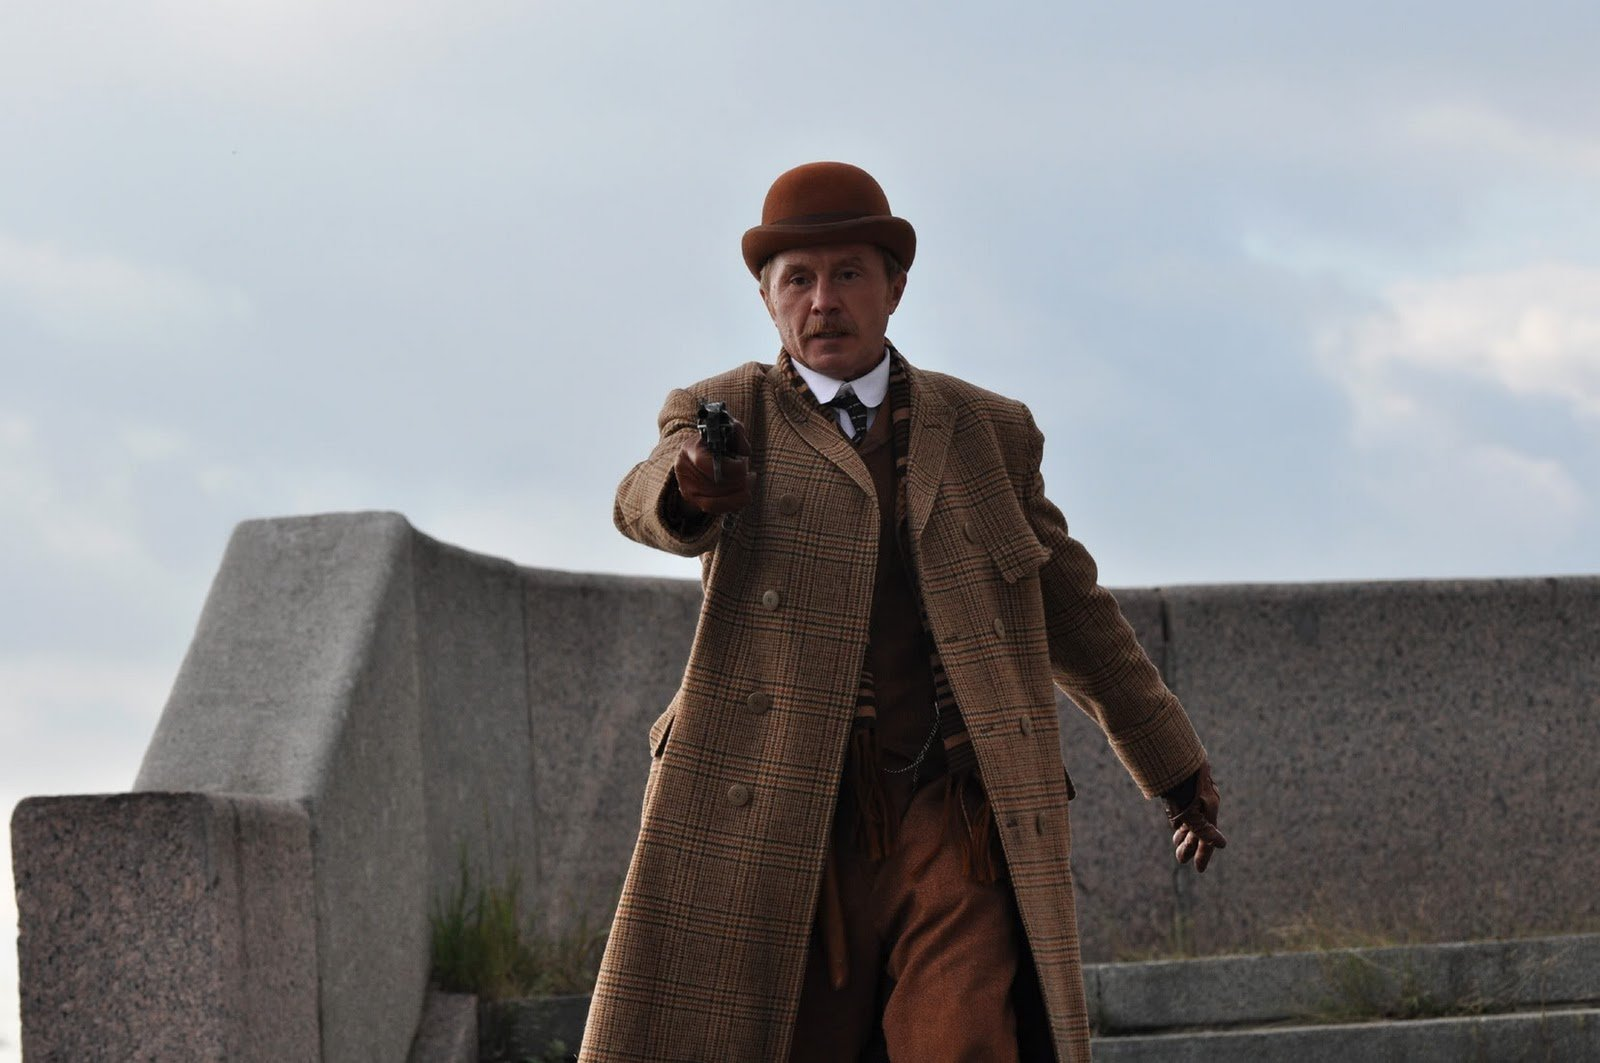 Andrei Panin as Dr Watson in <i>221b Baker Street</i>, the latest Russian version of the Holmes stories